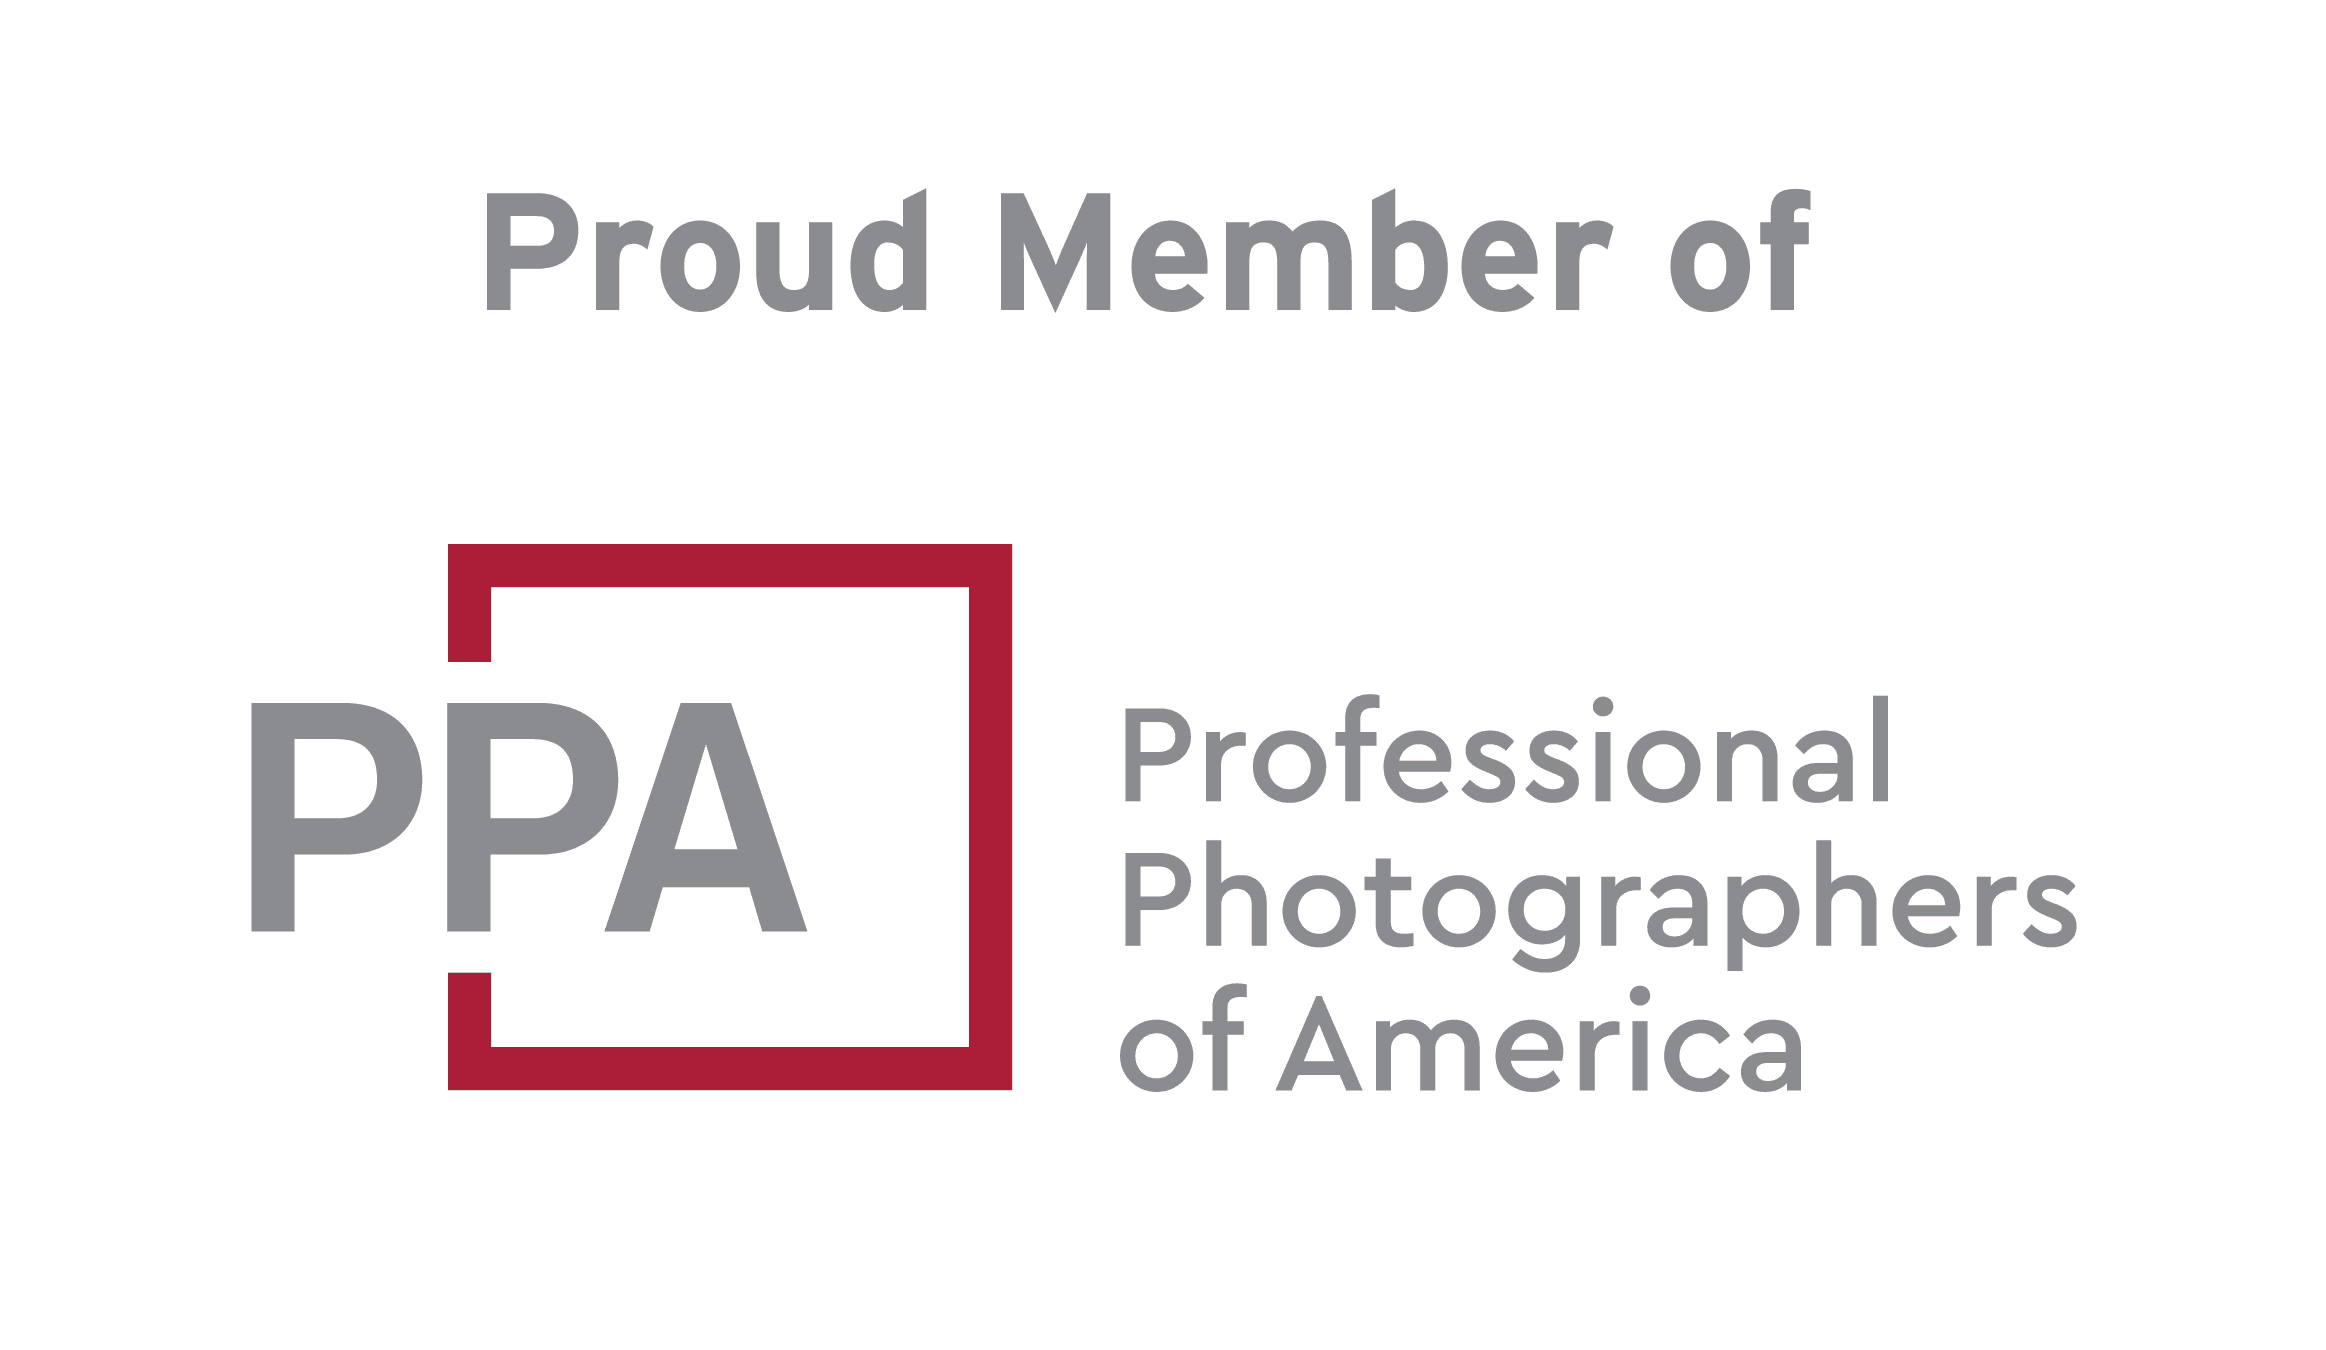 Professional Photographer of America